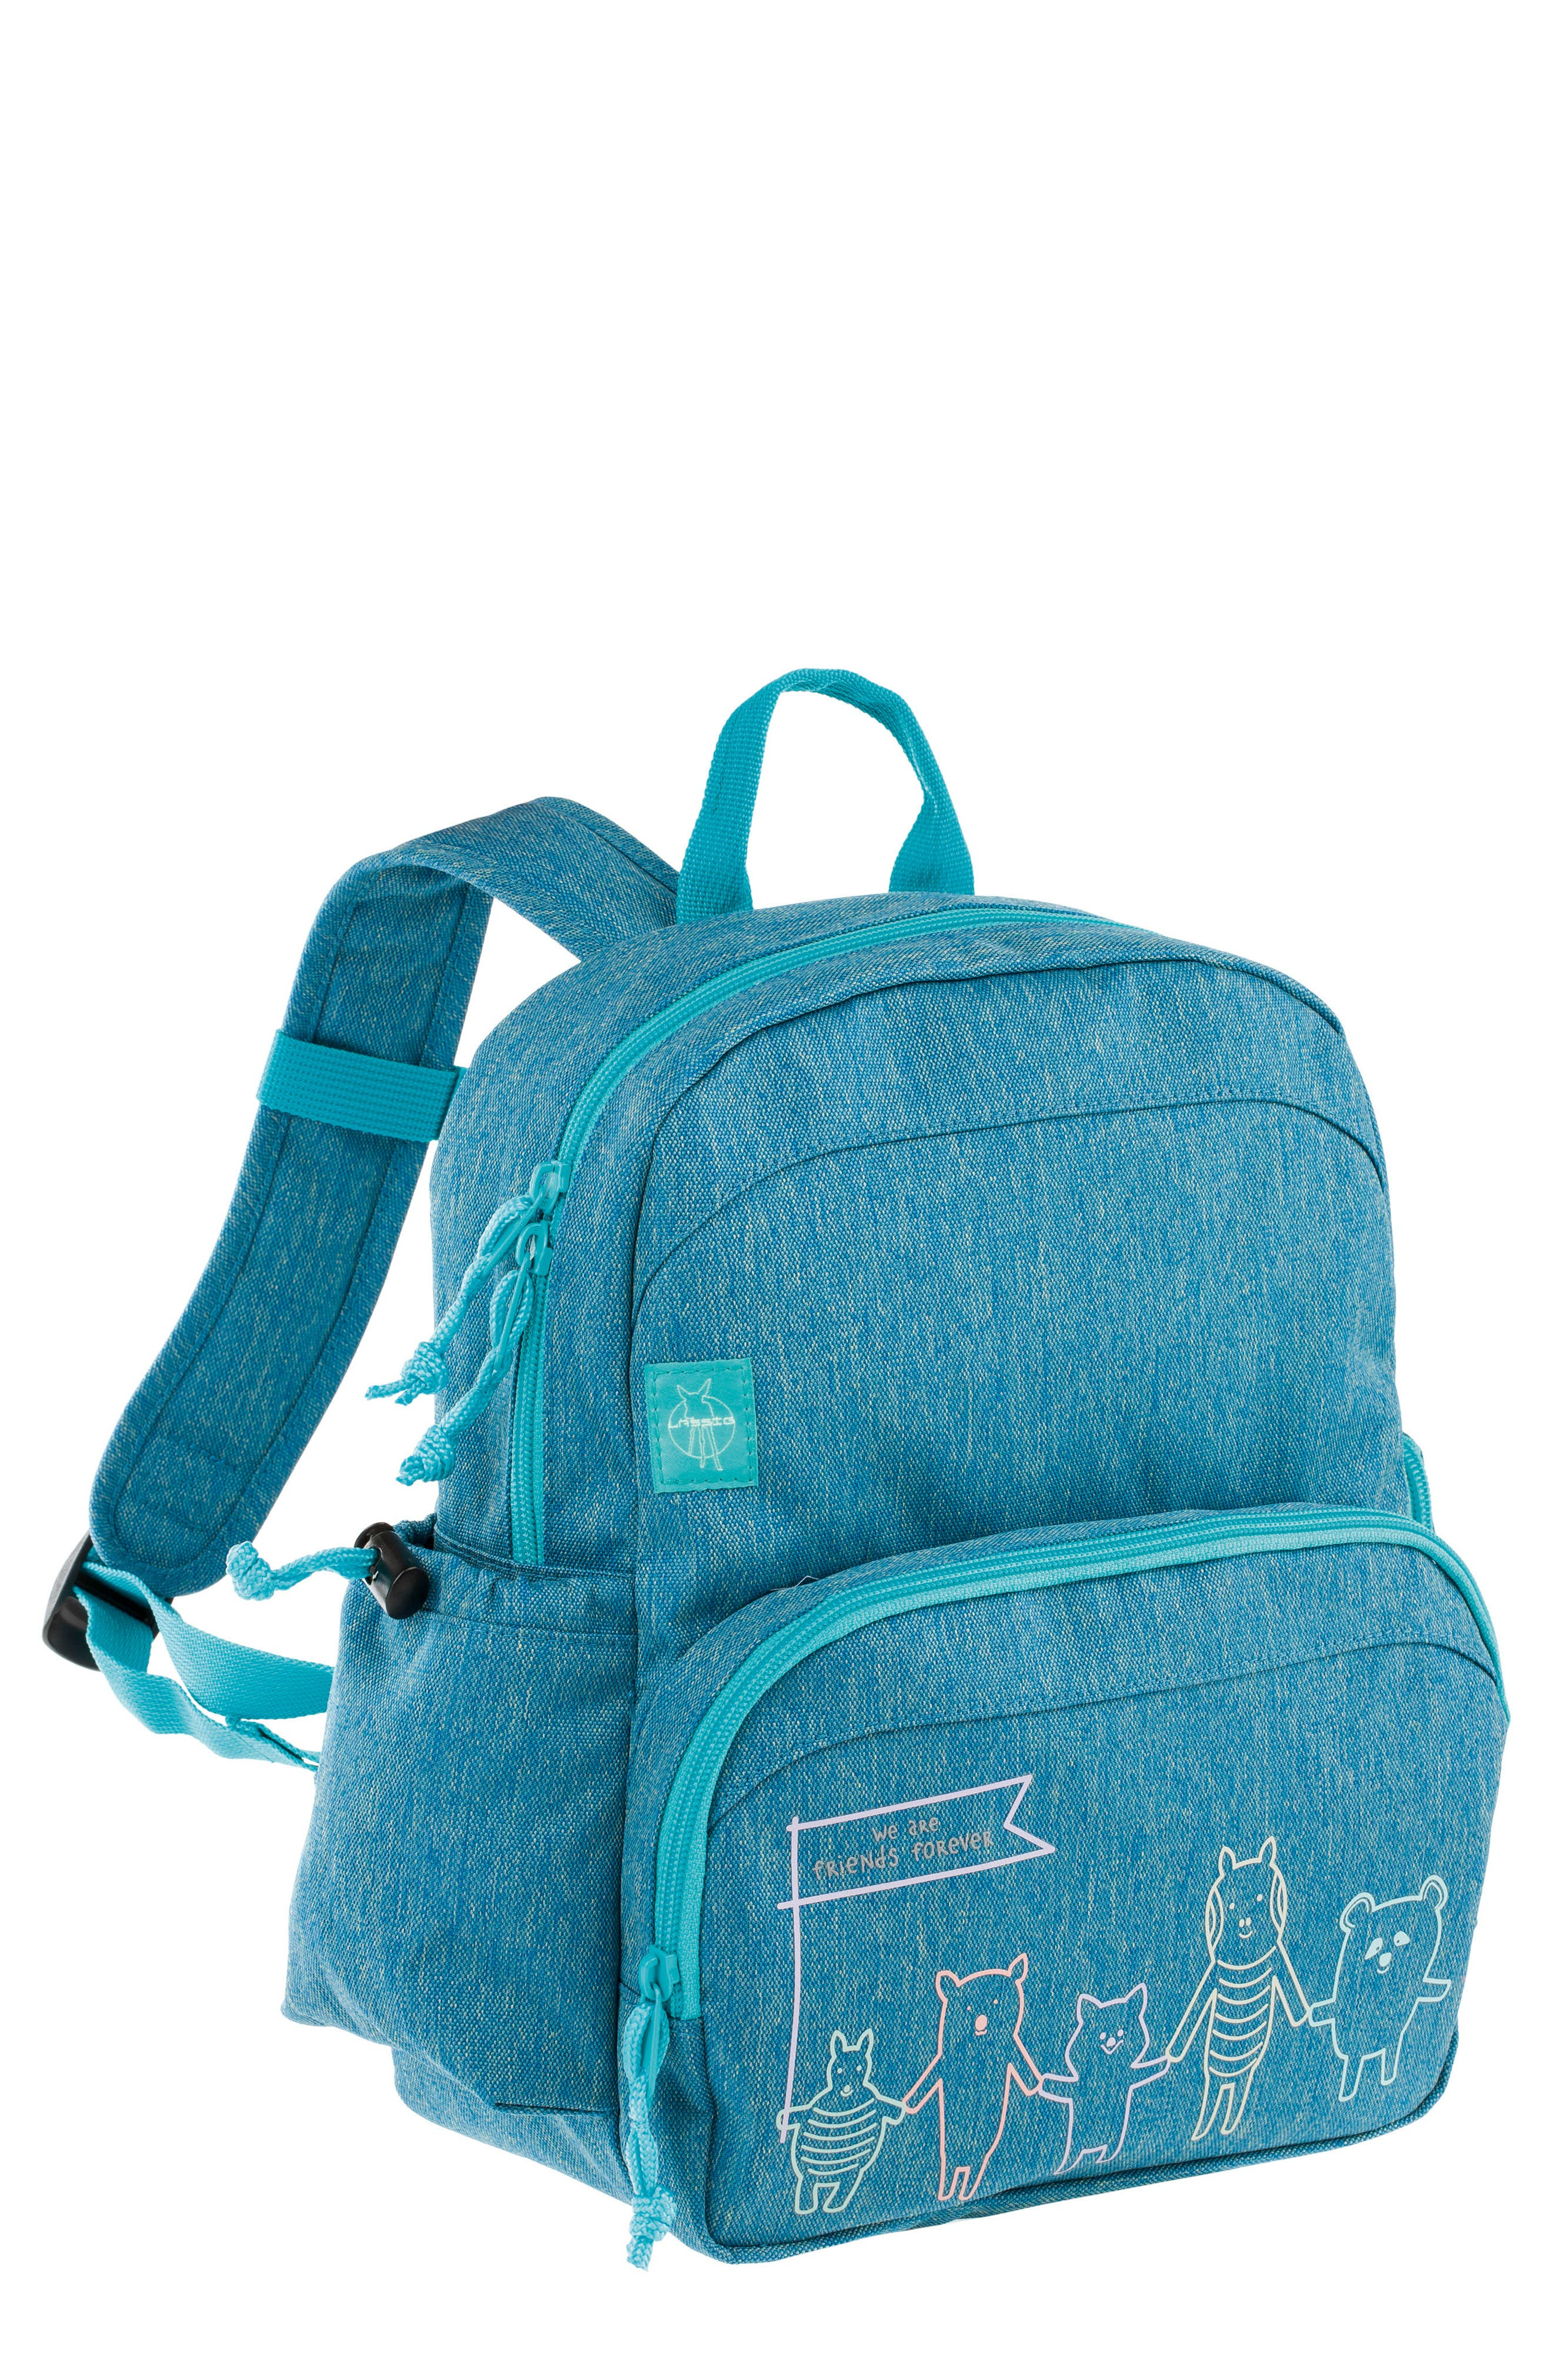 Lässig Medium About Friends Backpack (Kids)